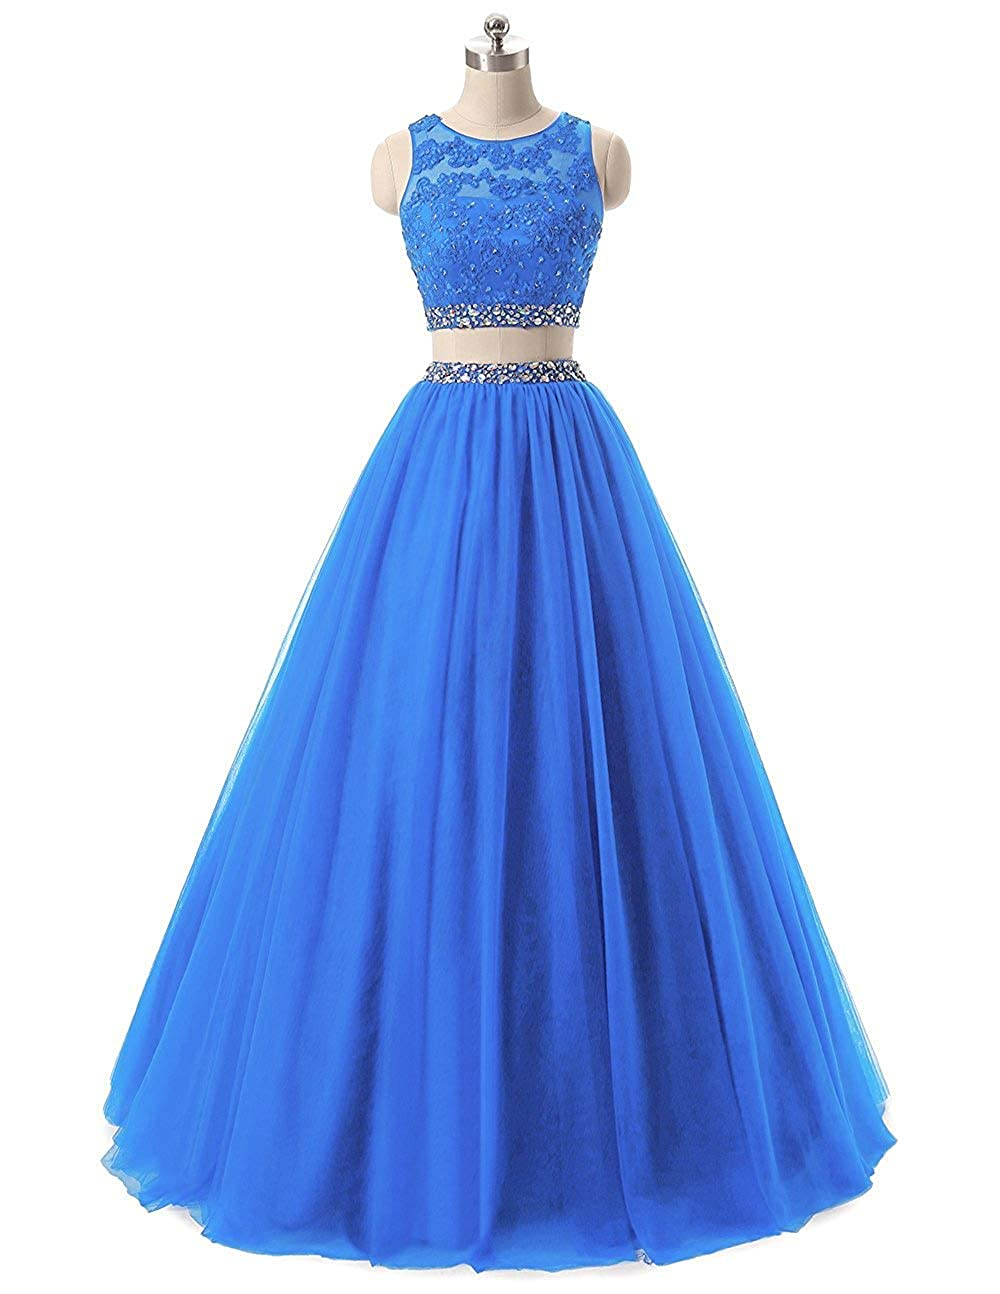 bluee Liaoye Women's 2 Pieces Prom Dress Long Lace Sequined Evening Ball Gowns Beaded Tulle Formal Party Dresses